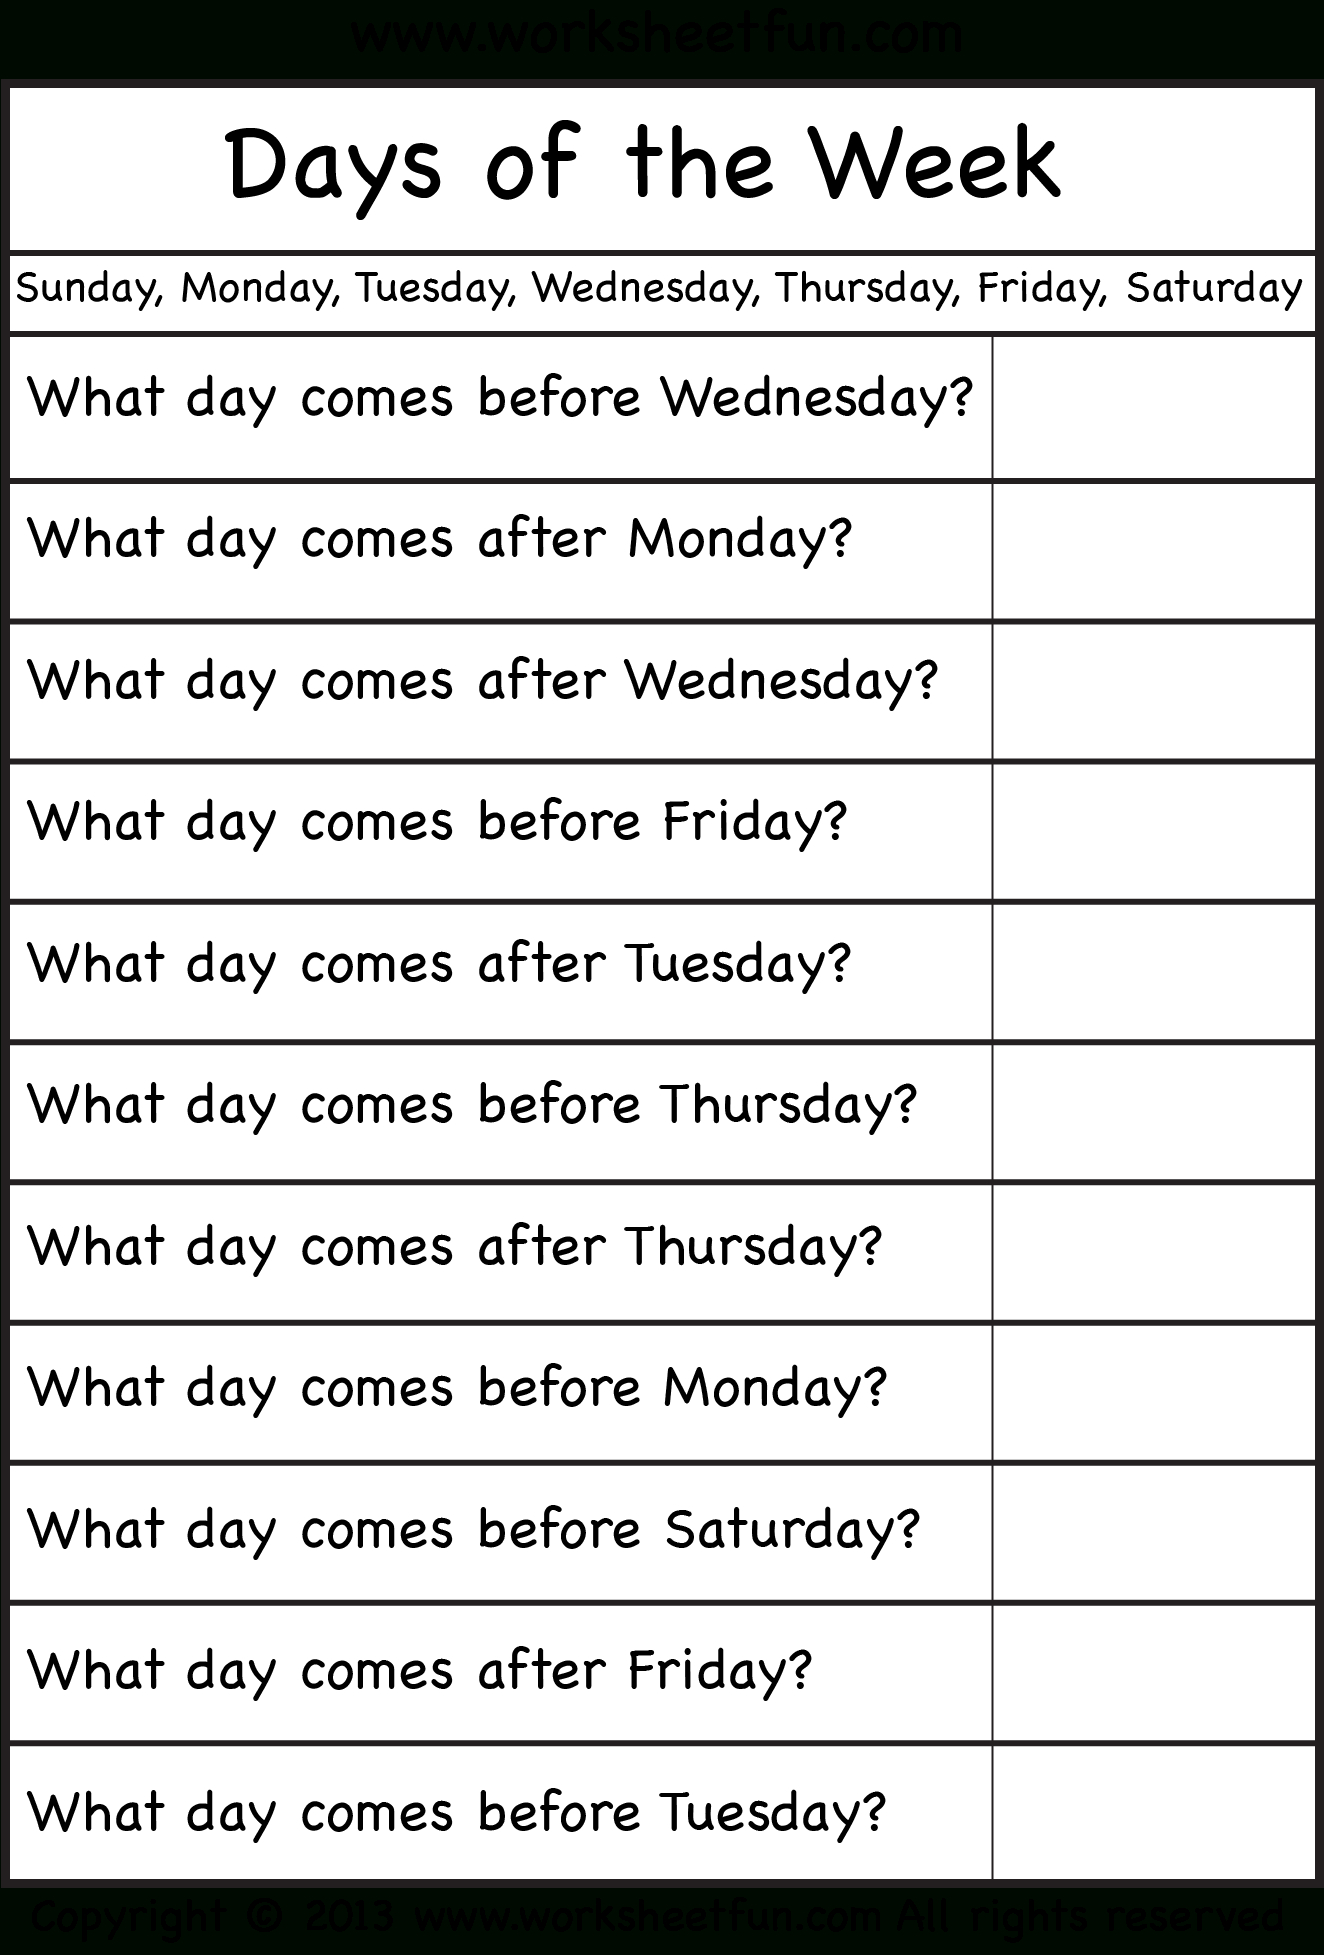 Days Of The Week – Worksheet / Free Printable Worksheets – Worksheetfun - Free Printable Days Of The Week